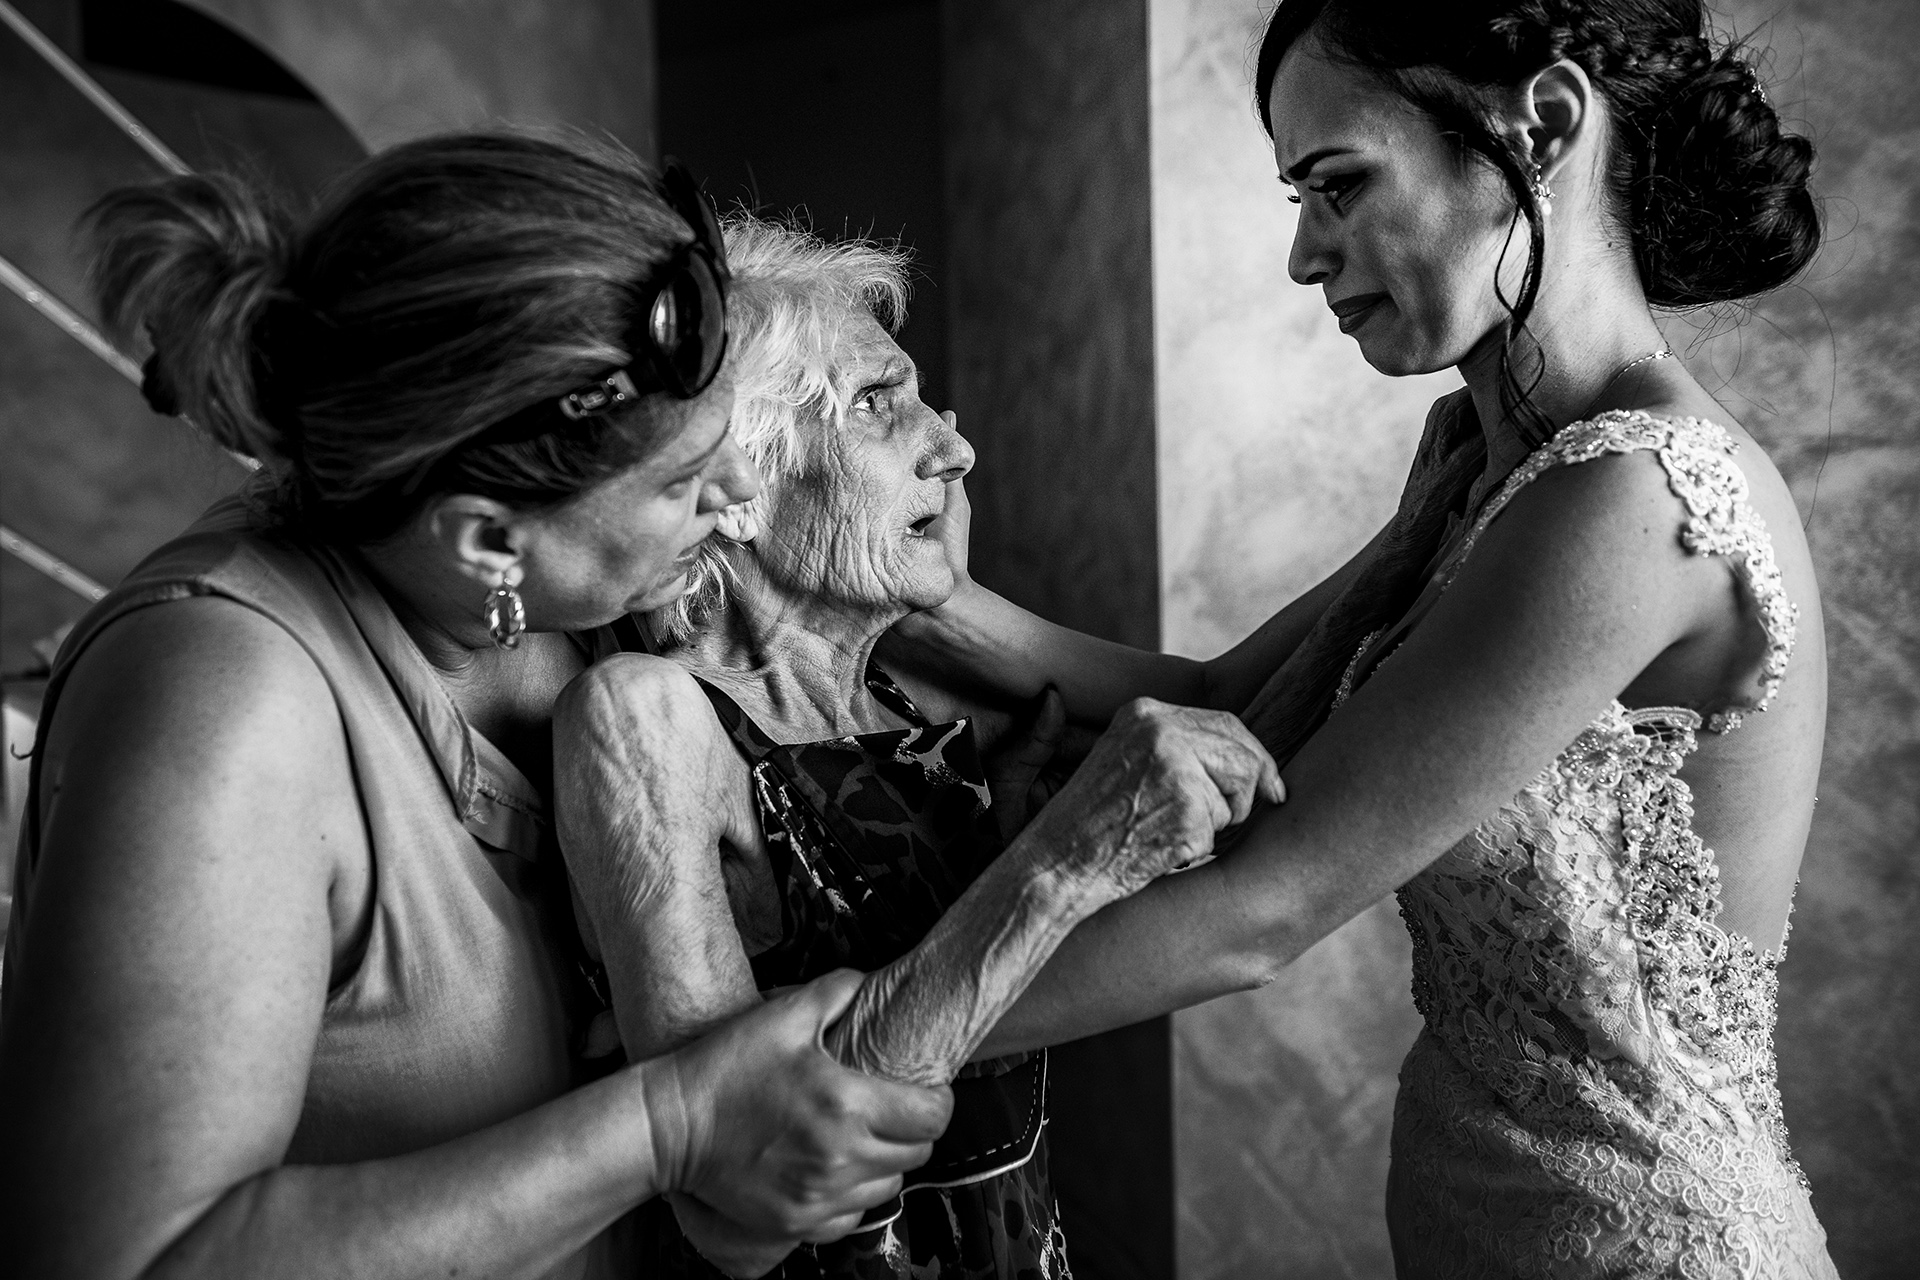 Wedding Photojournalist captures generations | The bride shares a moment with her mother and grandmother before the ceremony